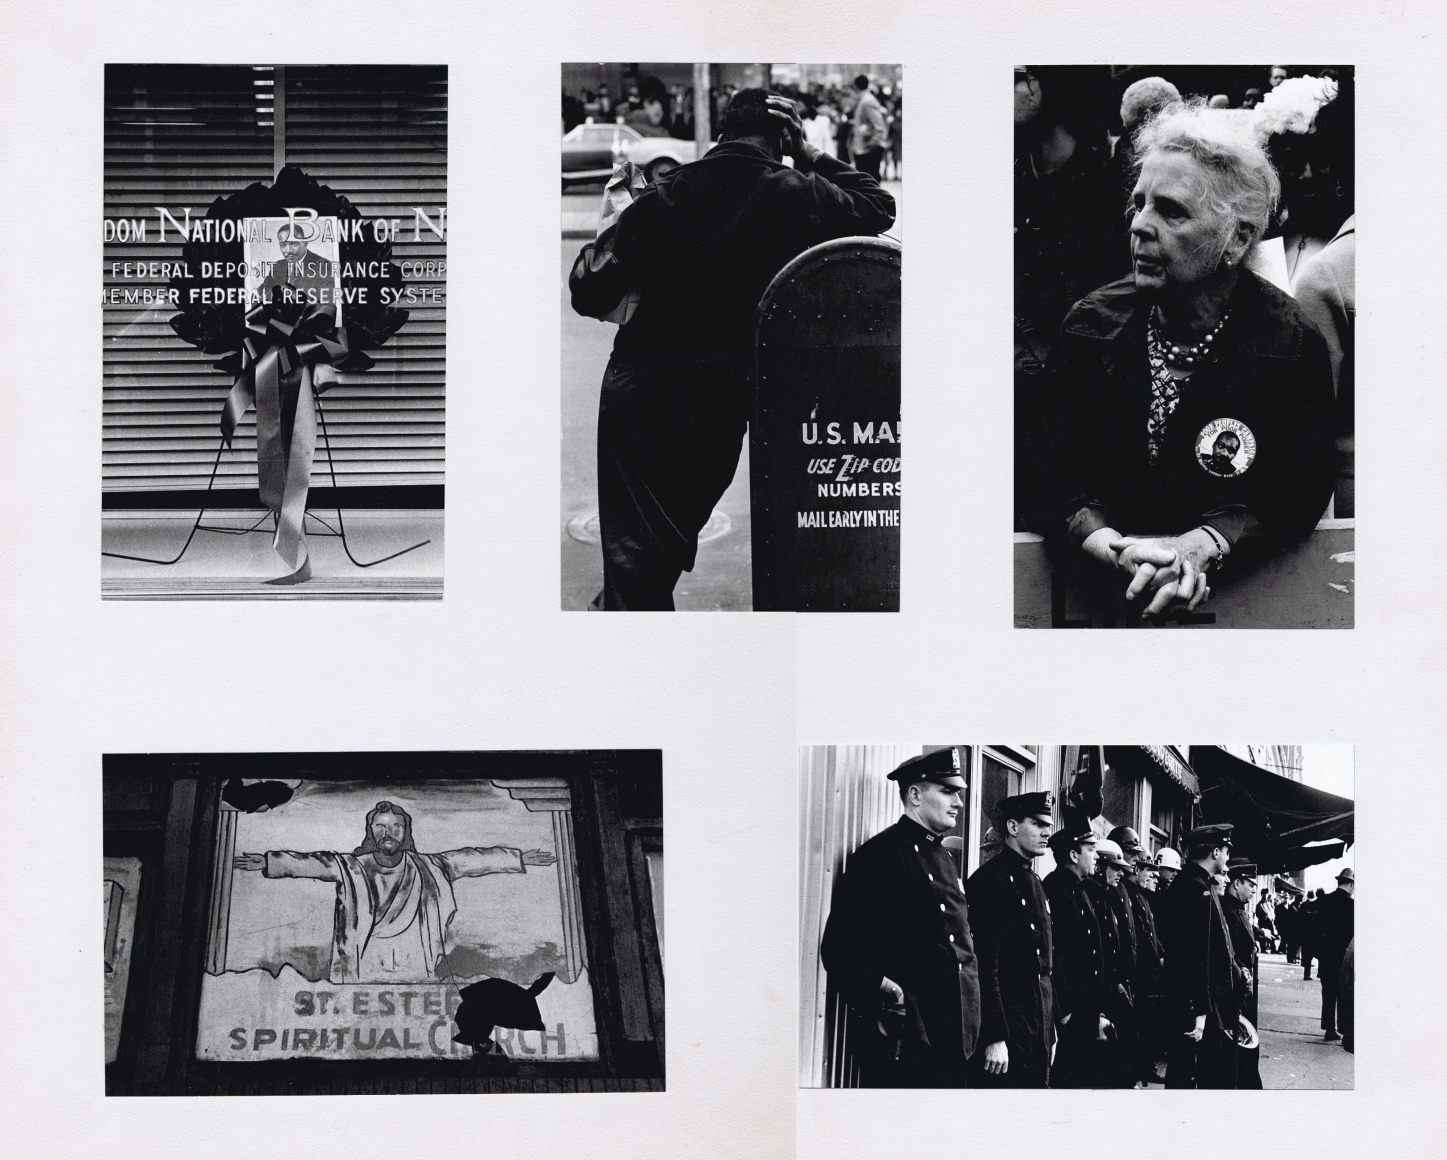 """32. Beuford Smith, I Have a Dream: The Assassination of Martin Luther King, Jr., April 5, 1968. Five photographs mounted on white board. Features a church, a man leaning against a mailbox, a line of police officers, a wreath with MLK's portrait in the center, and a woman wearing a pin with """"Poor Peoples Campaign"""" and MLK's portrait on it."""